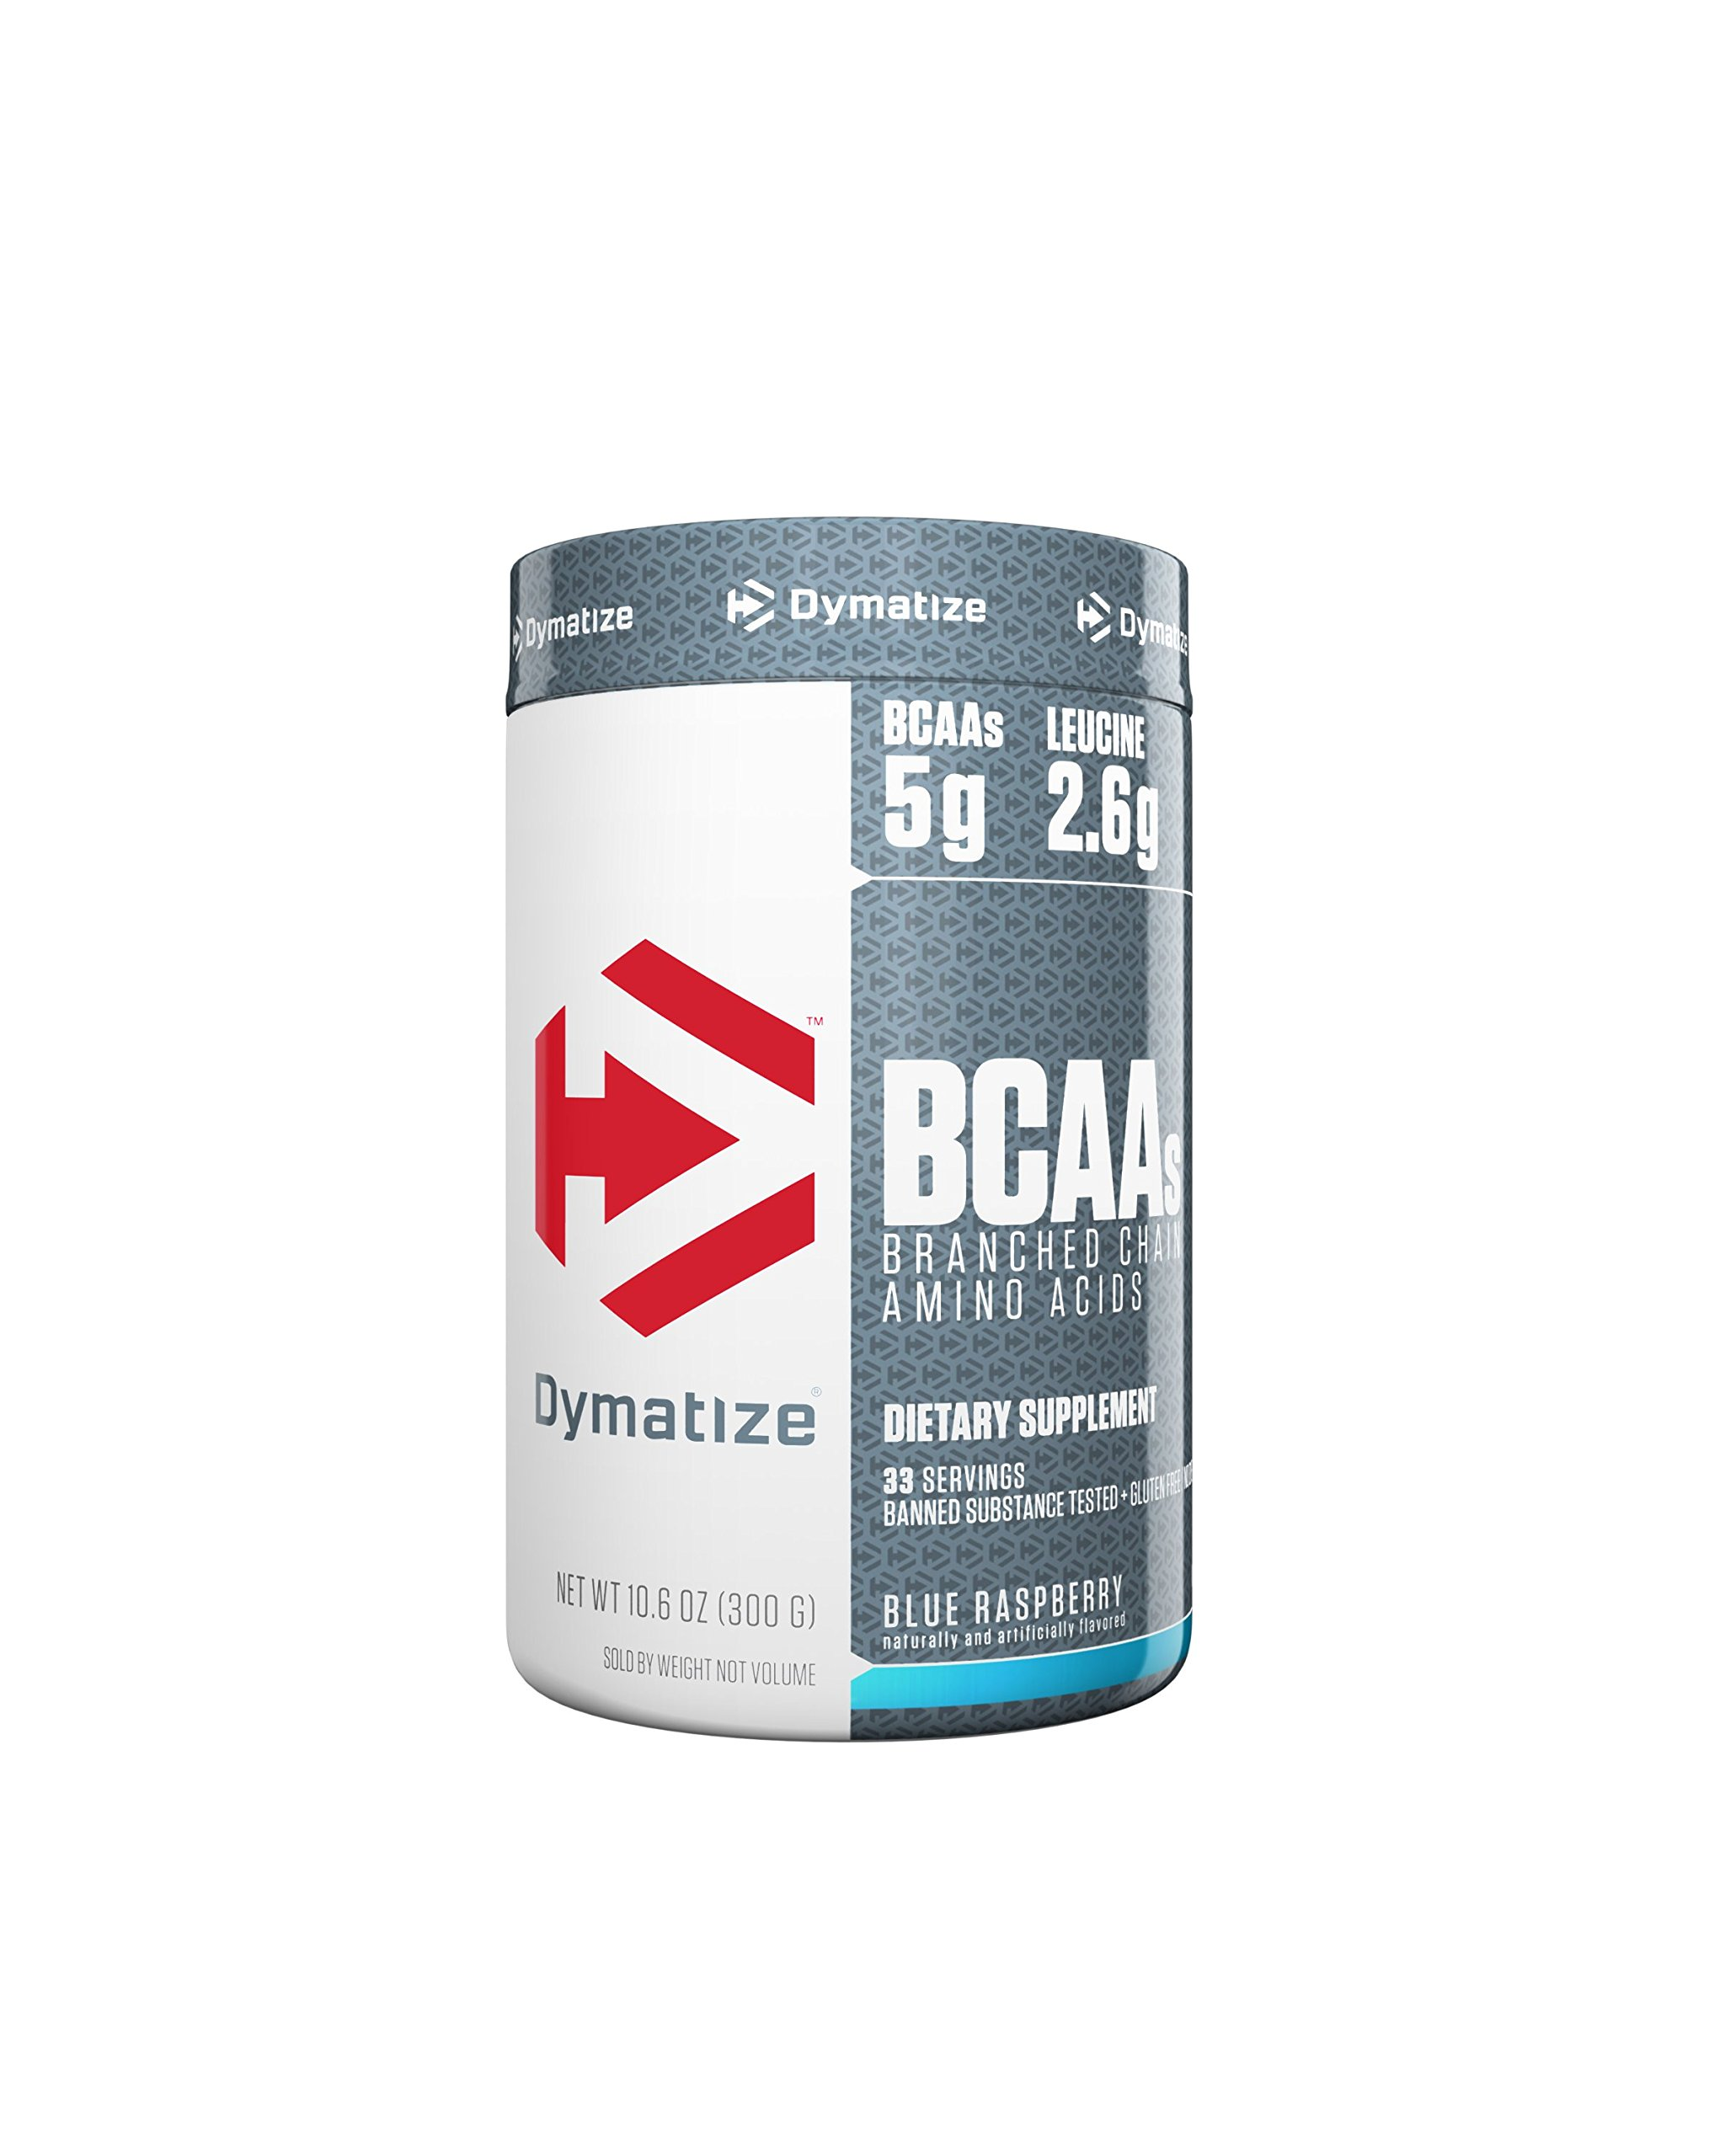 Dymatize BCAA Complex 5050 Powder, Promotes Muscle Regeneration, Time Released Aminos, Blue Raspberry, 10.6 Oz by Dymatize